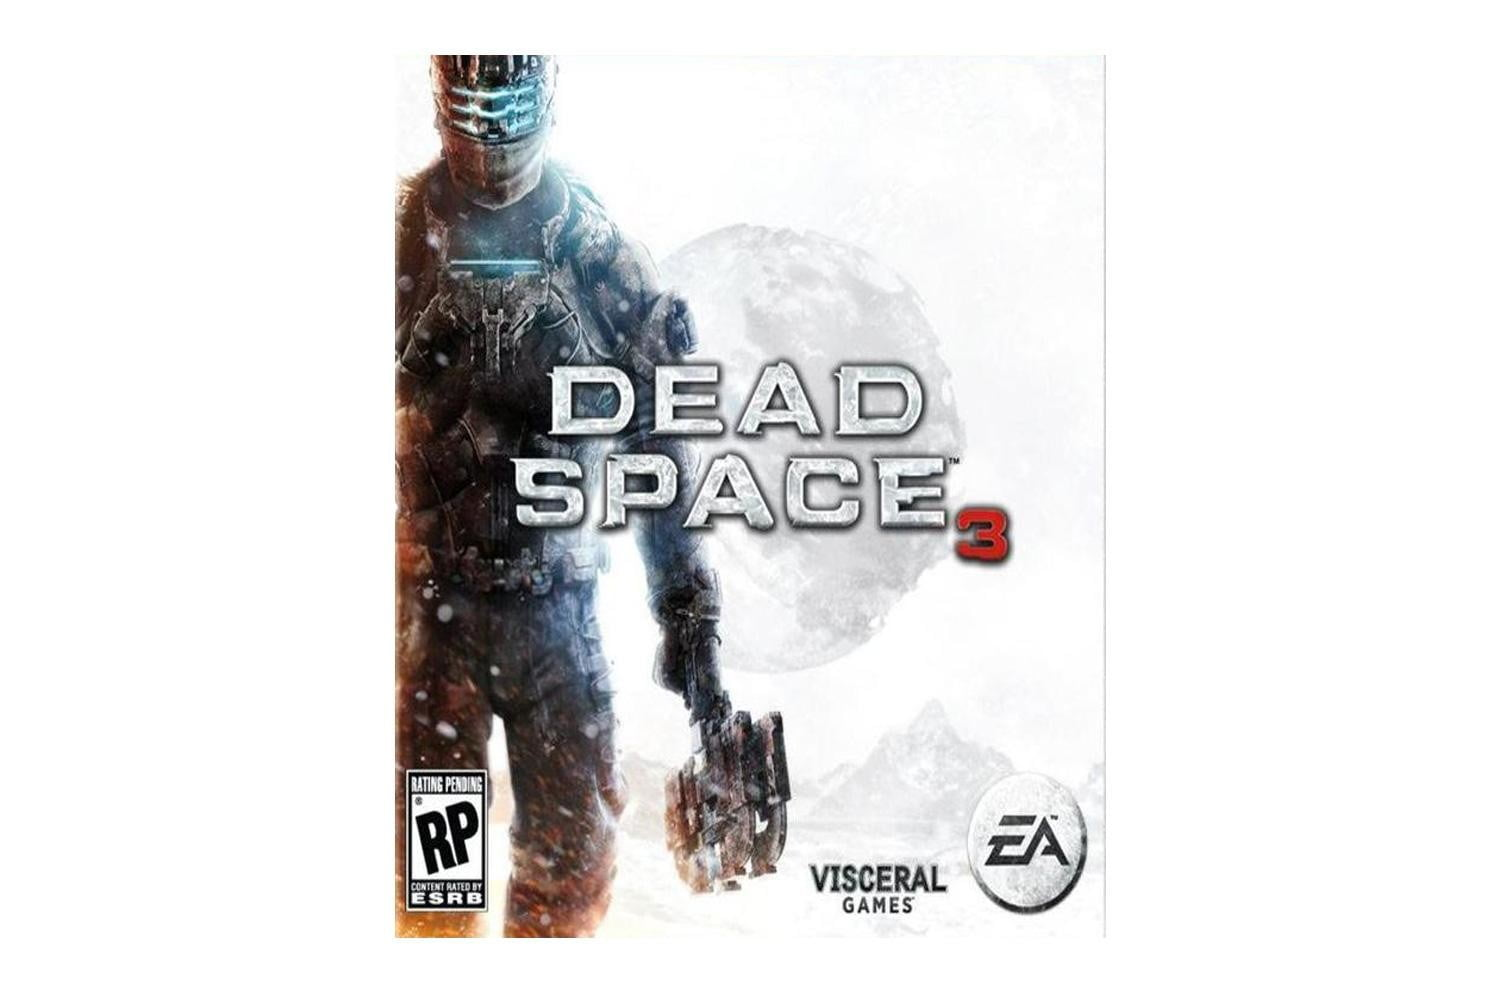 Dead-Space-3-cover-art